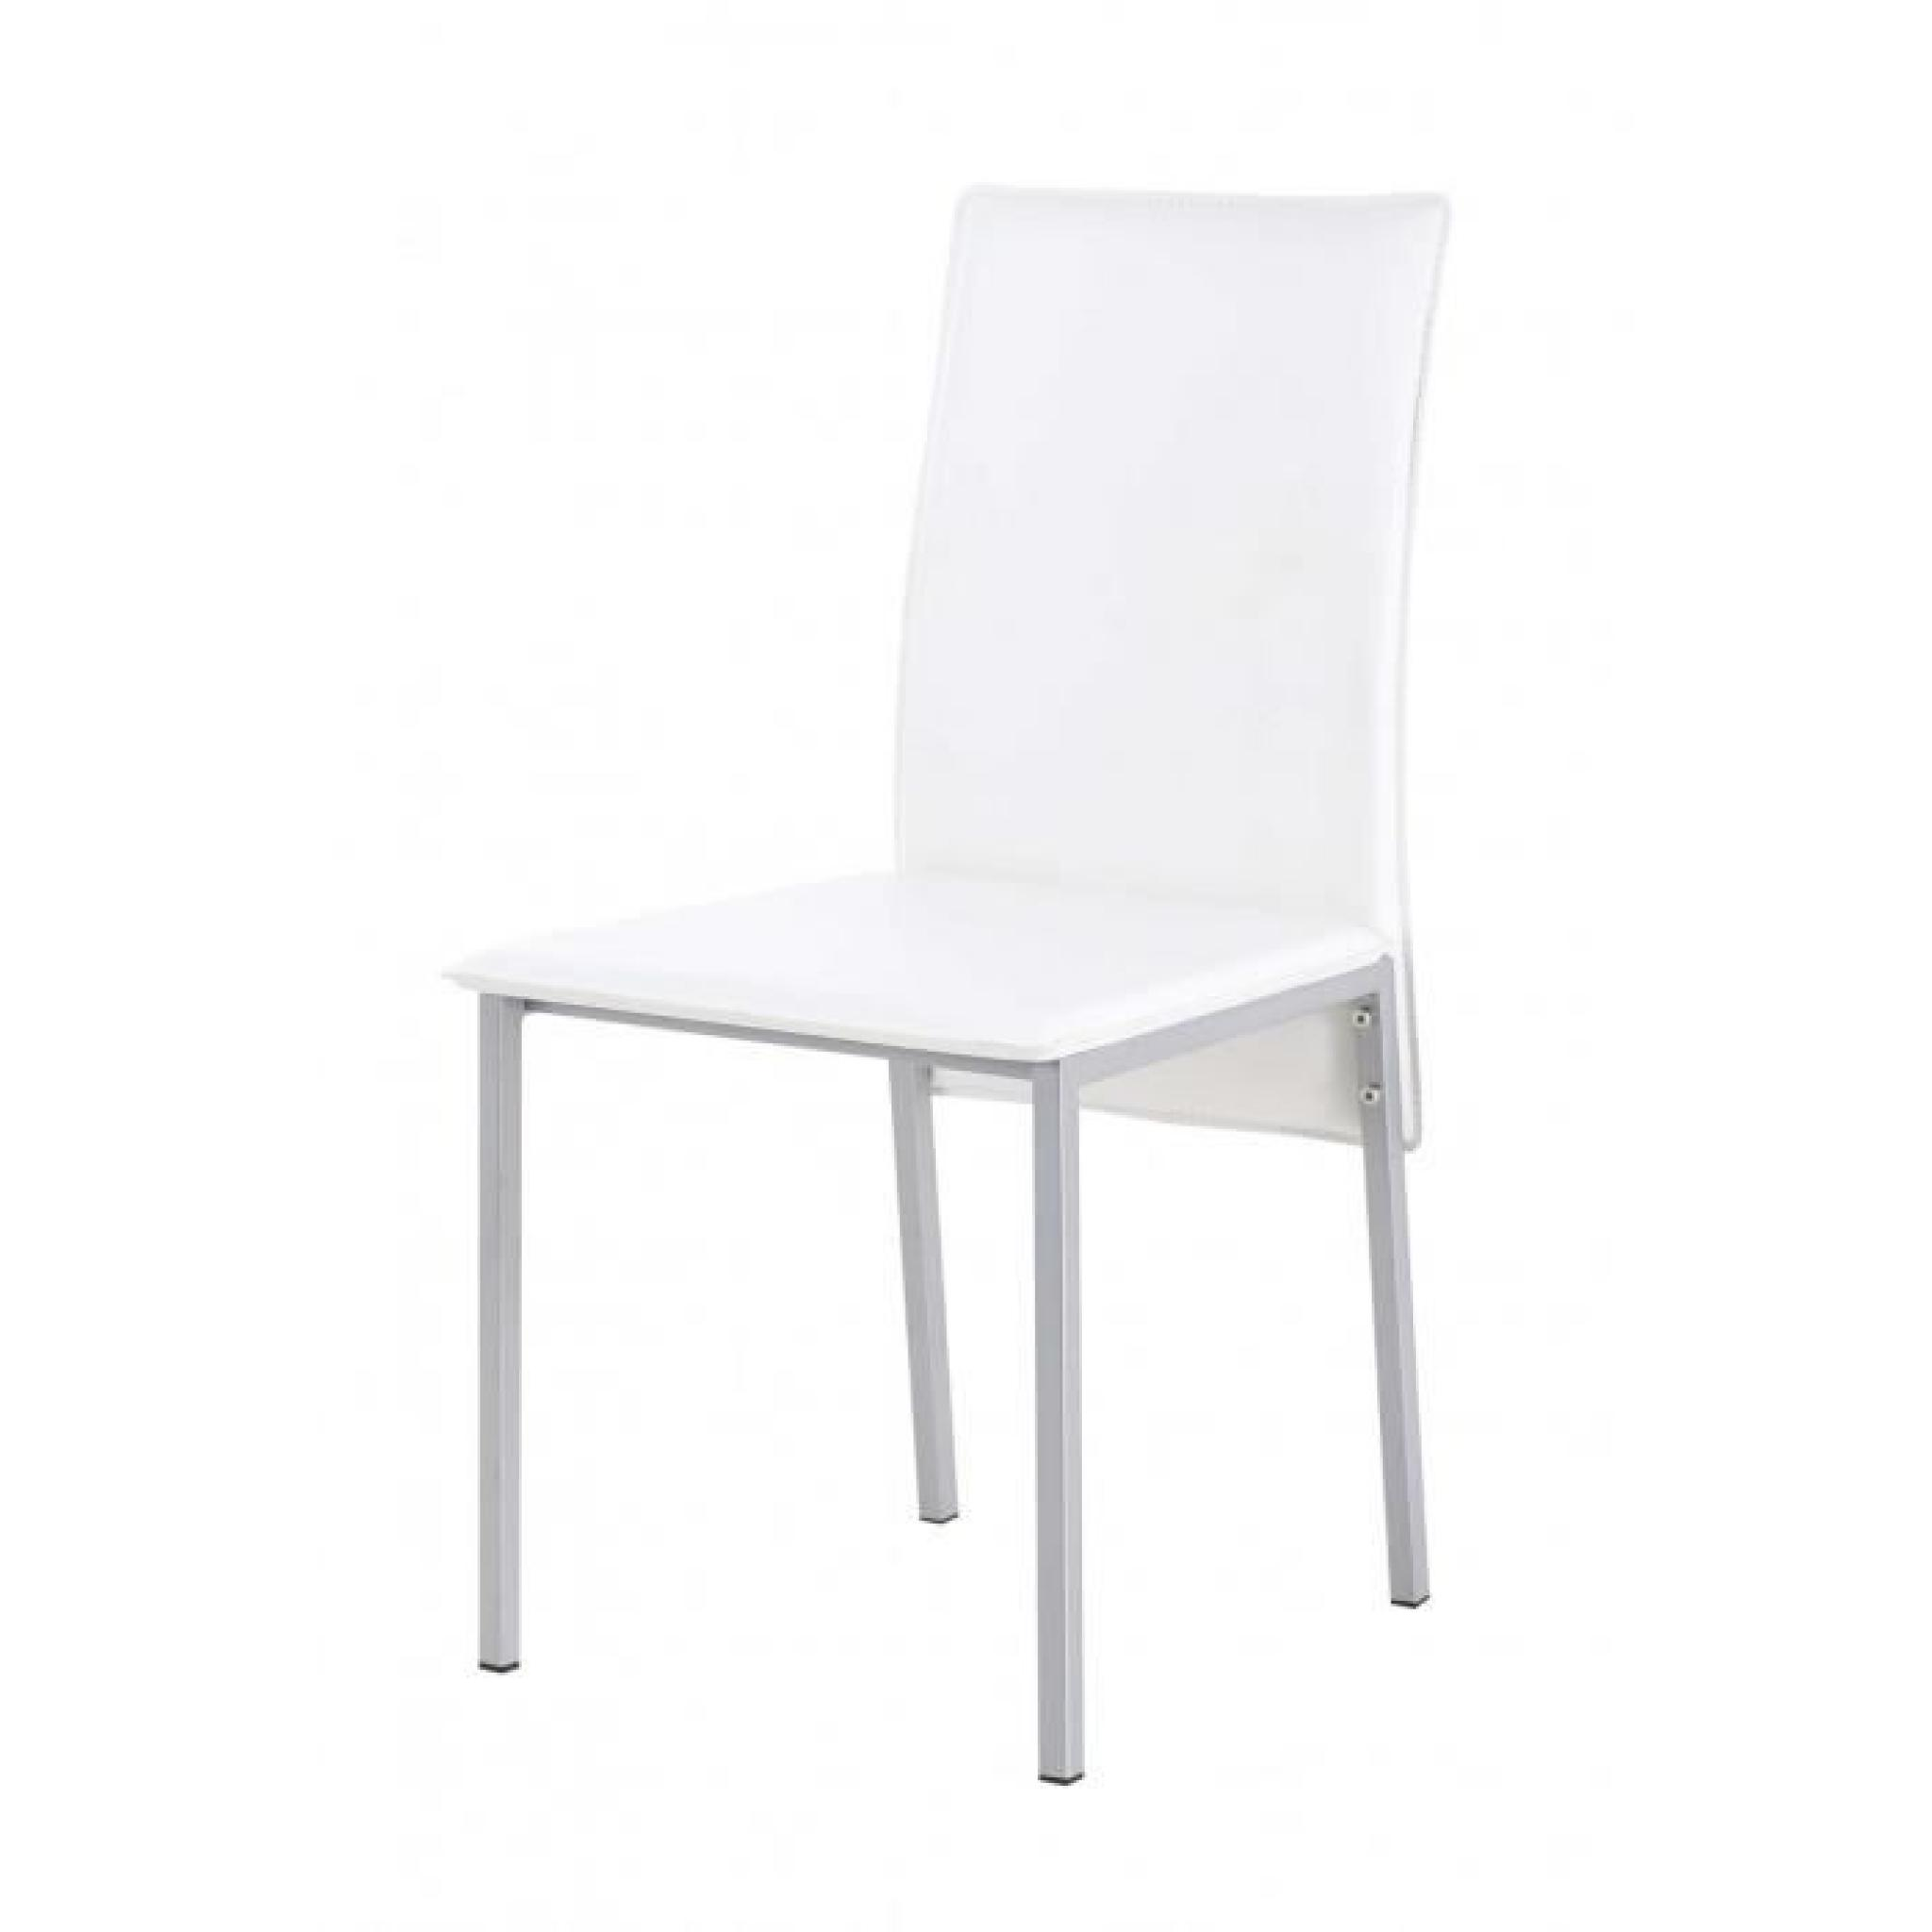 2x Chaise PU blanc Ines - Id'Click pas cher